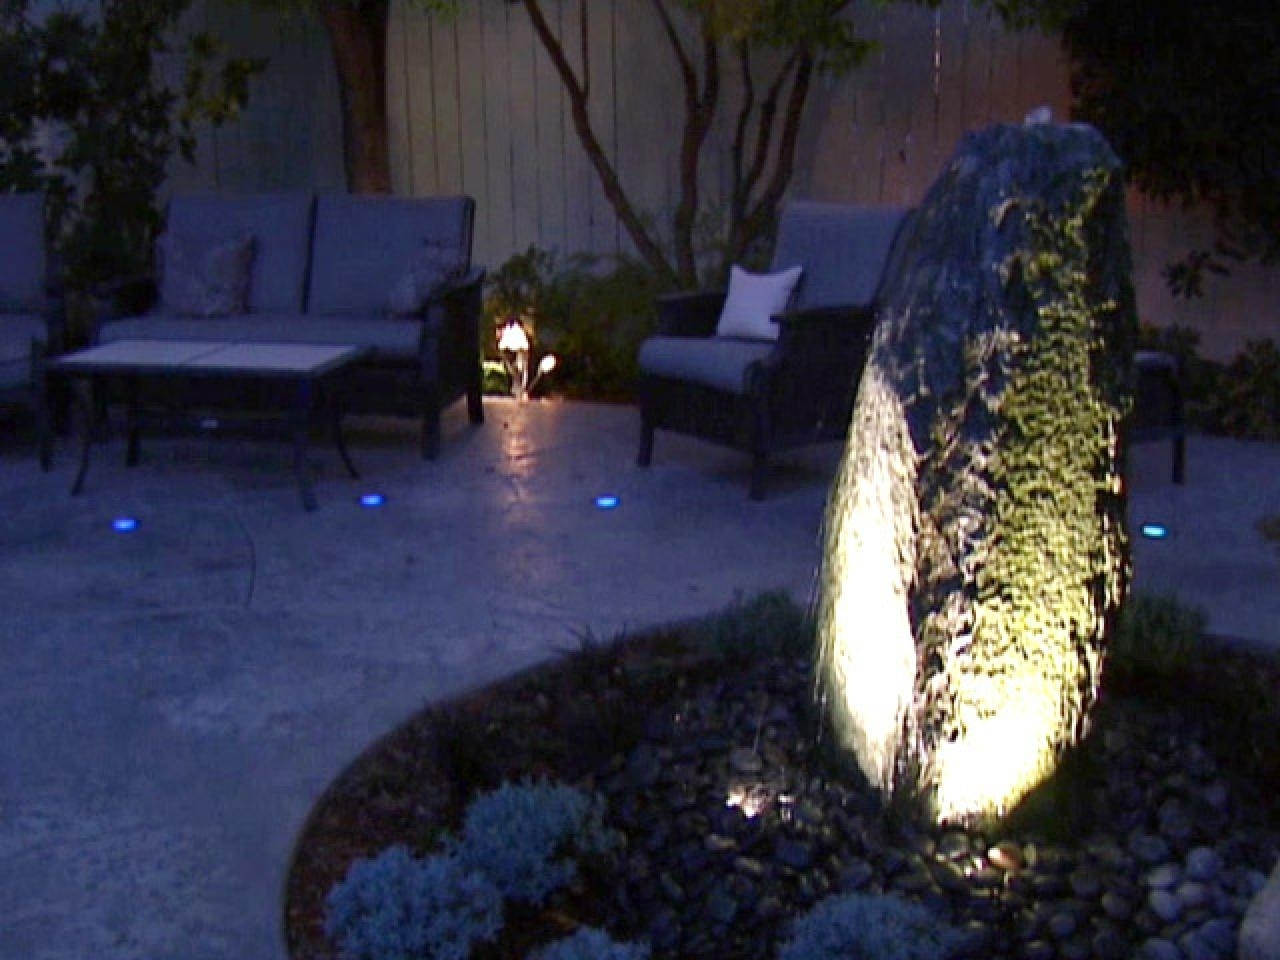 Outdoor Landscape Lighting Hgtv With Regard To Landscape Spotlights Wonderful Landscape Spotlights At Night